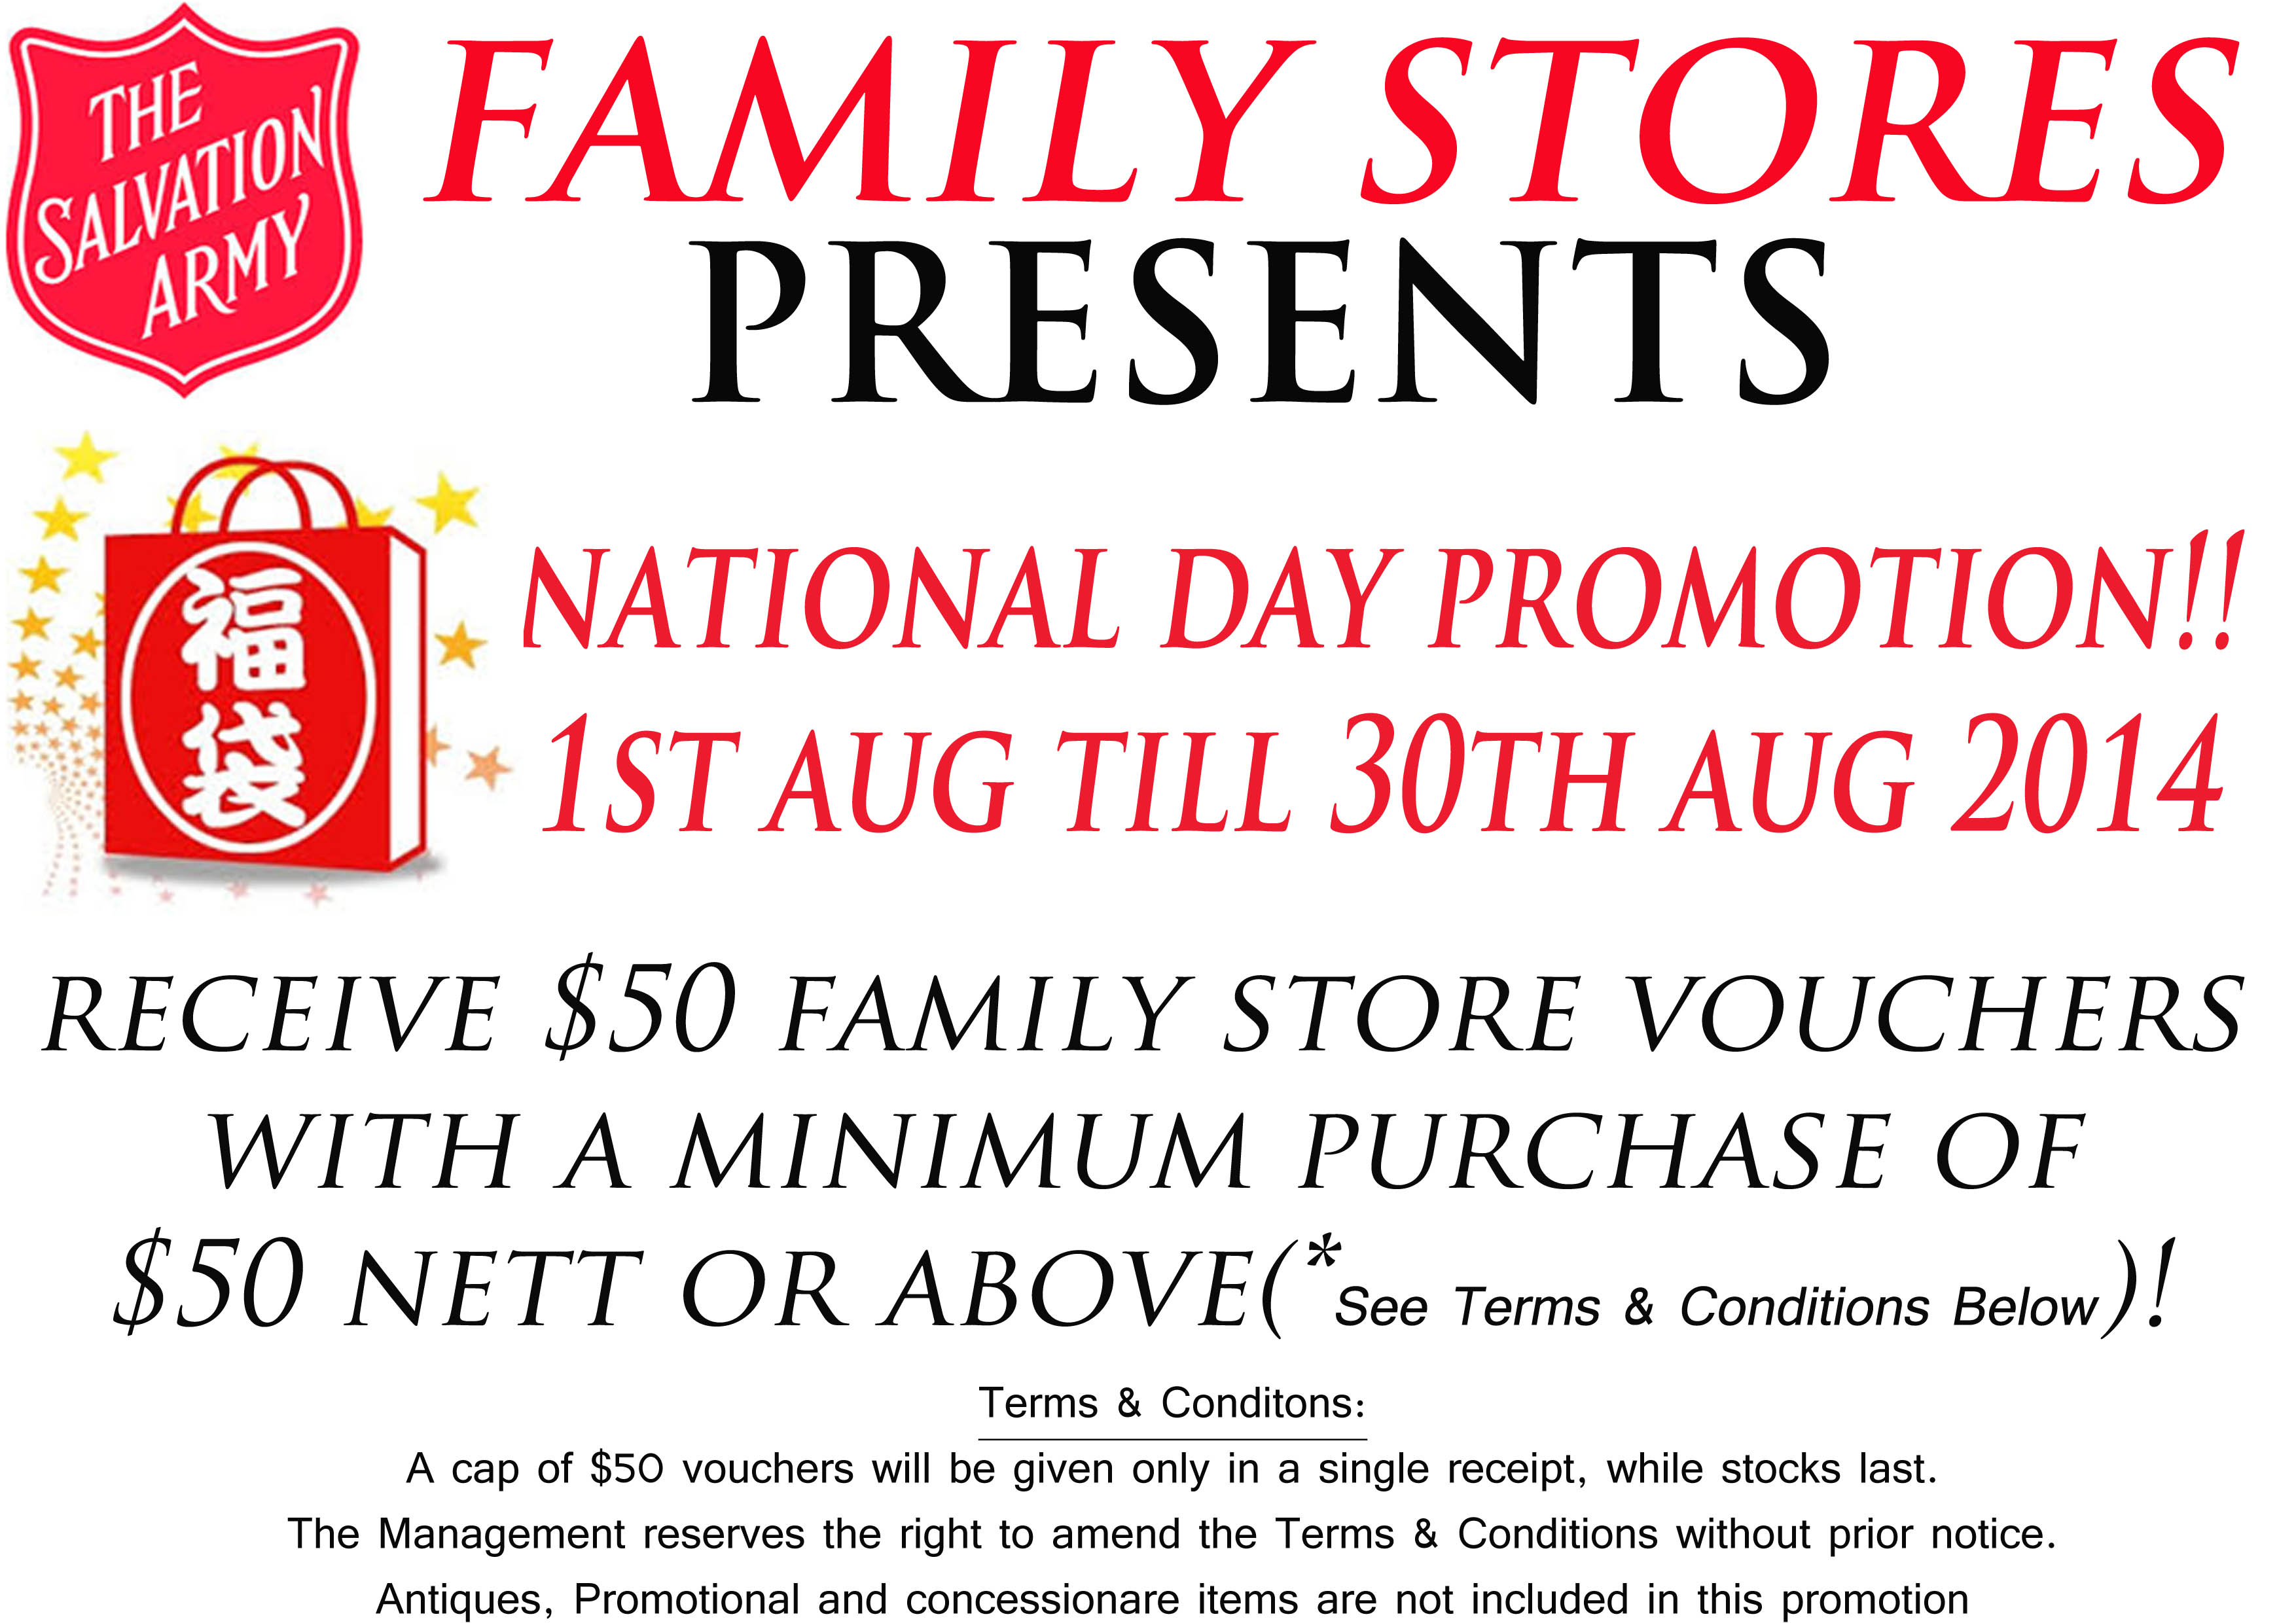 National Day Promo 1 31 Jul 14